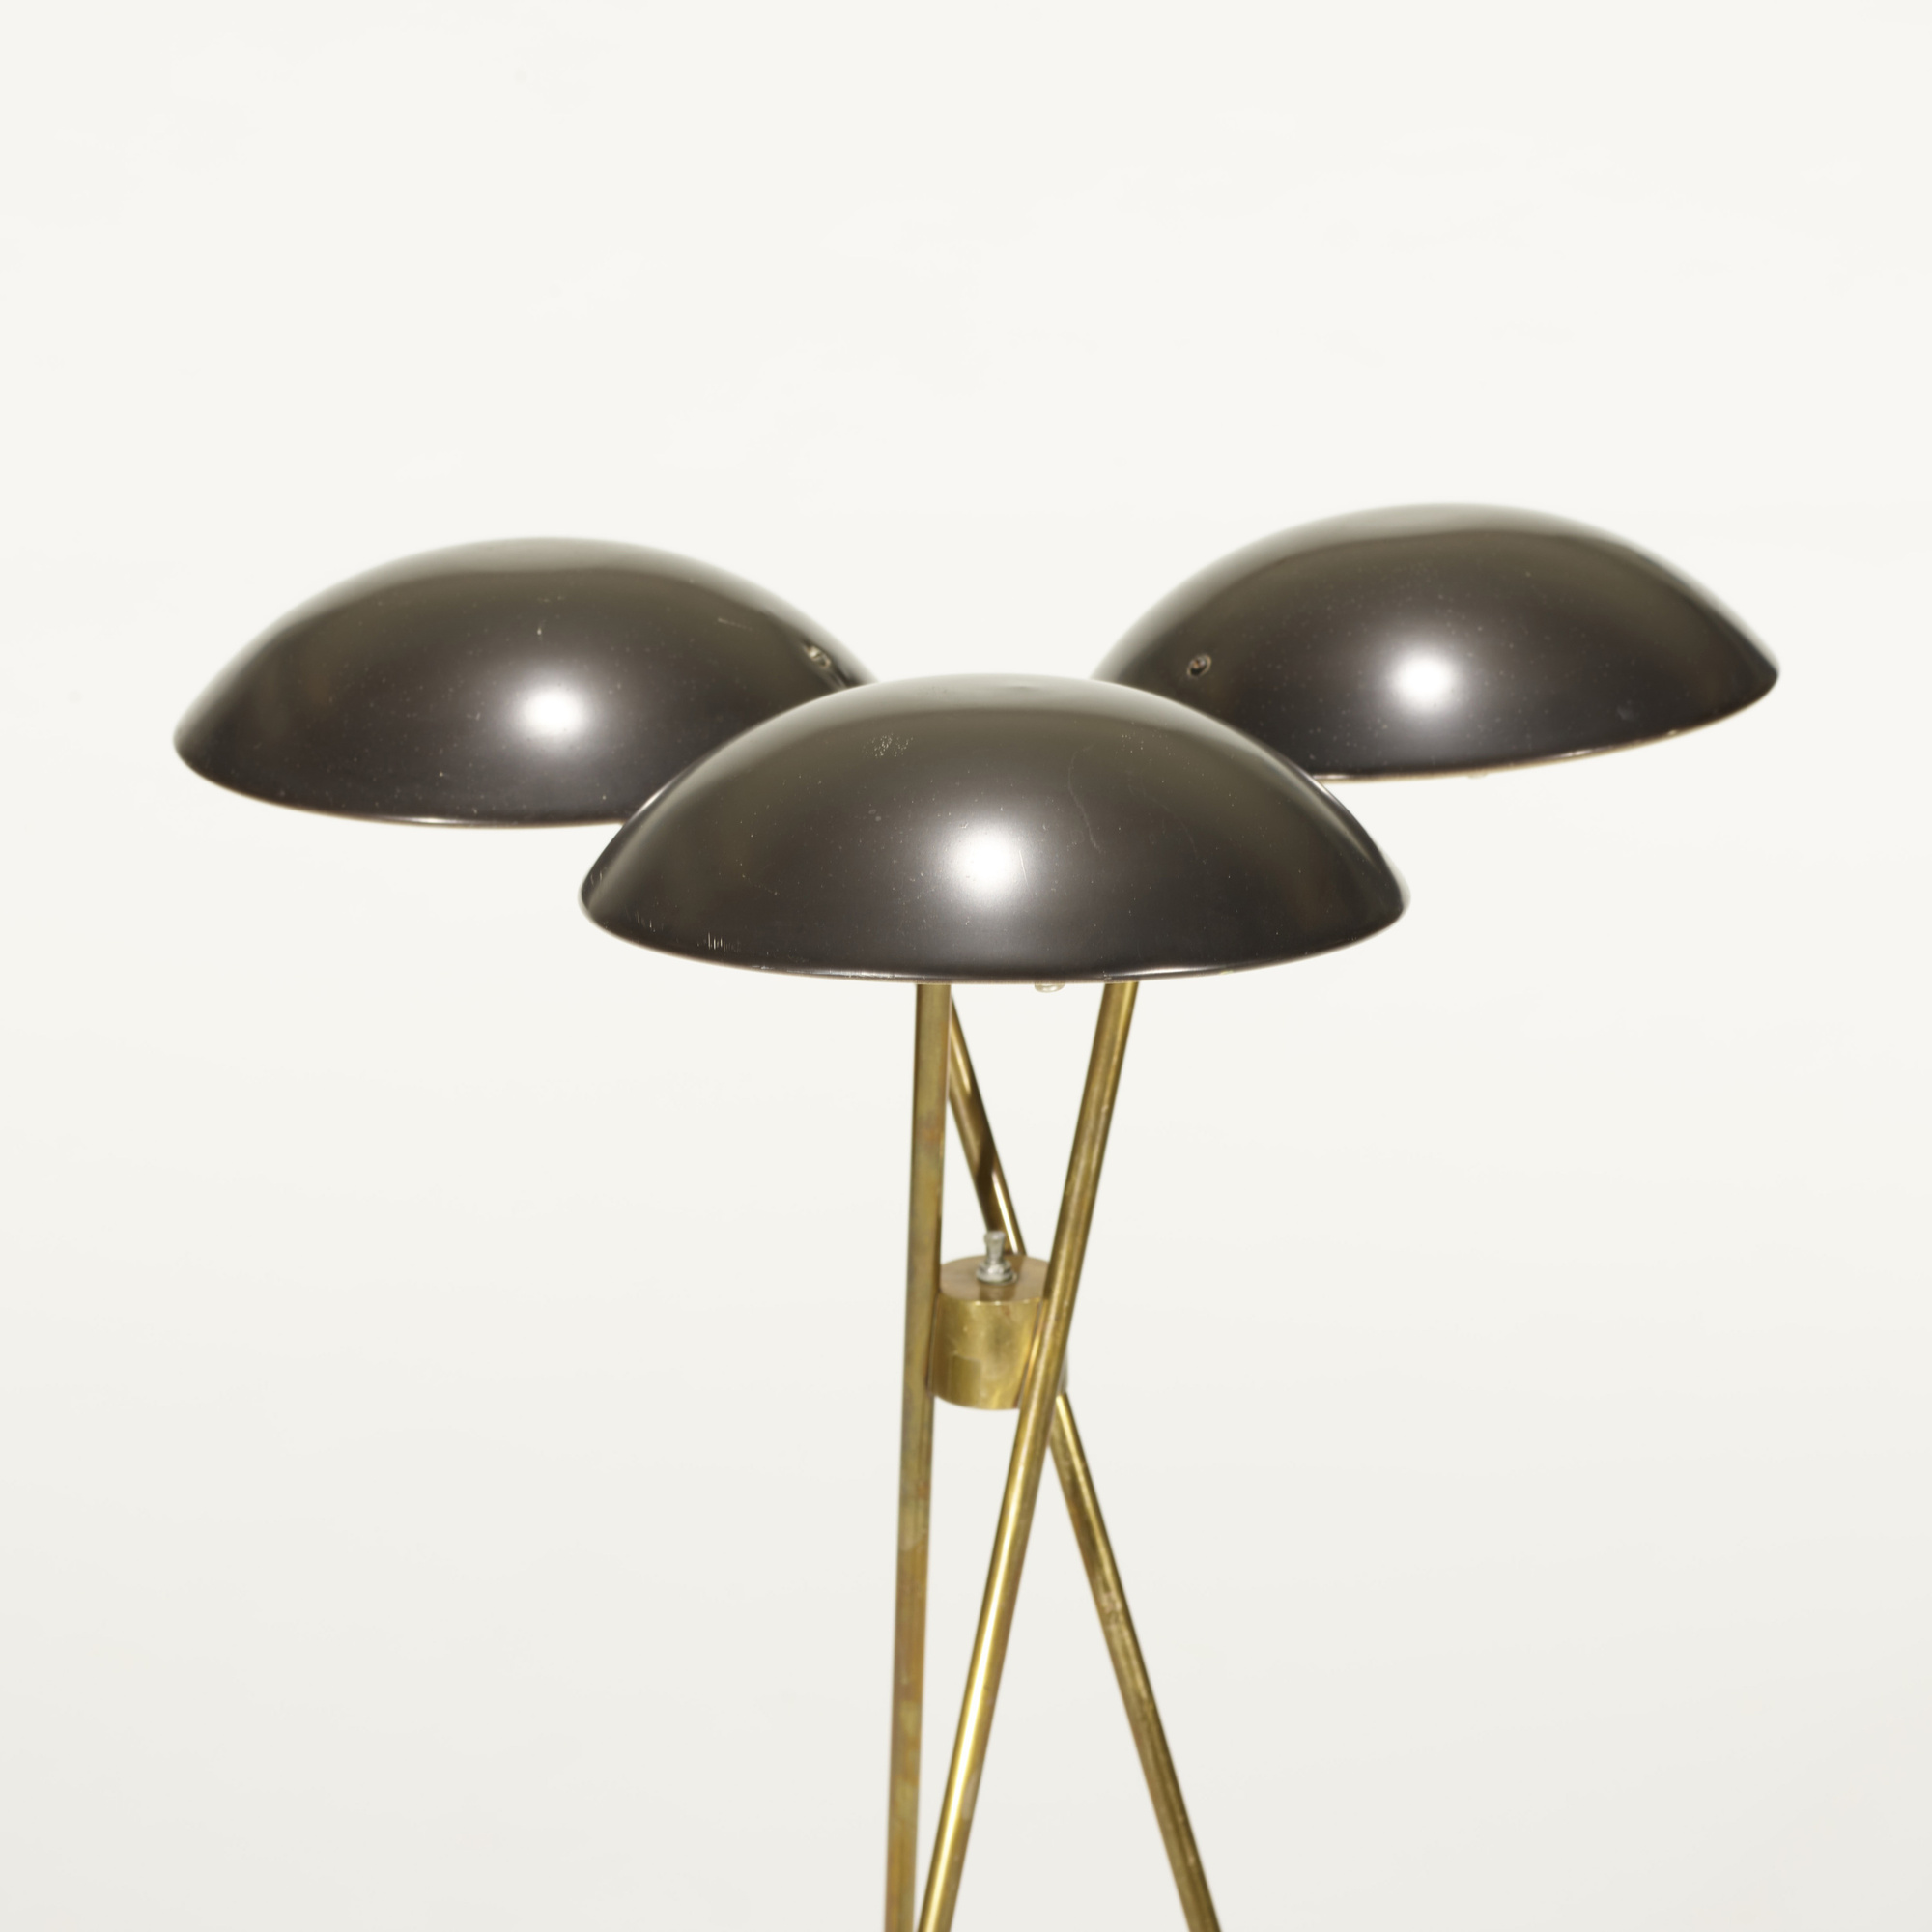 193 gerald thurston floor lamp american design 15 september 193 geotapseo Image collections